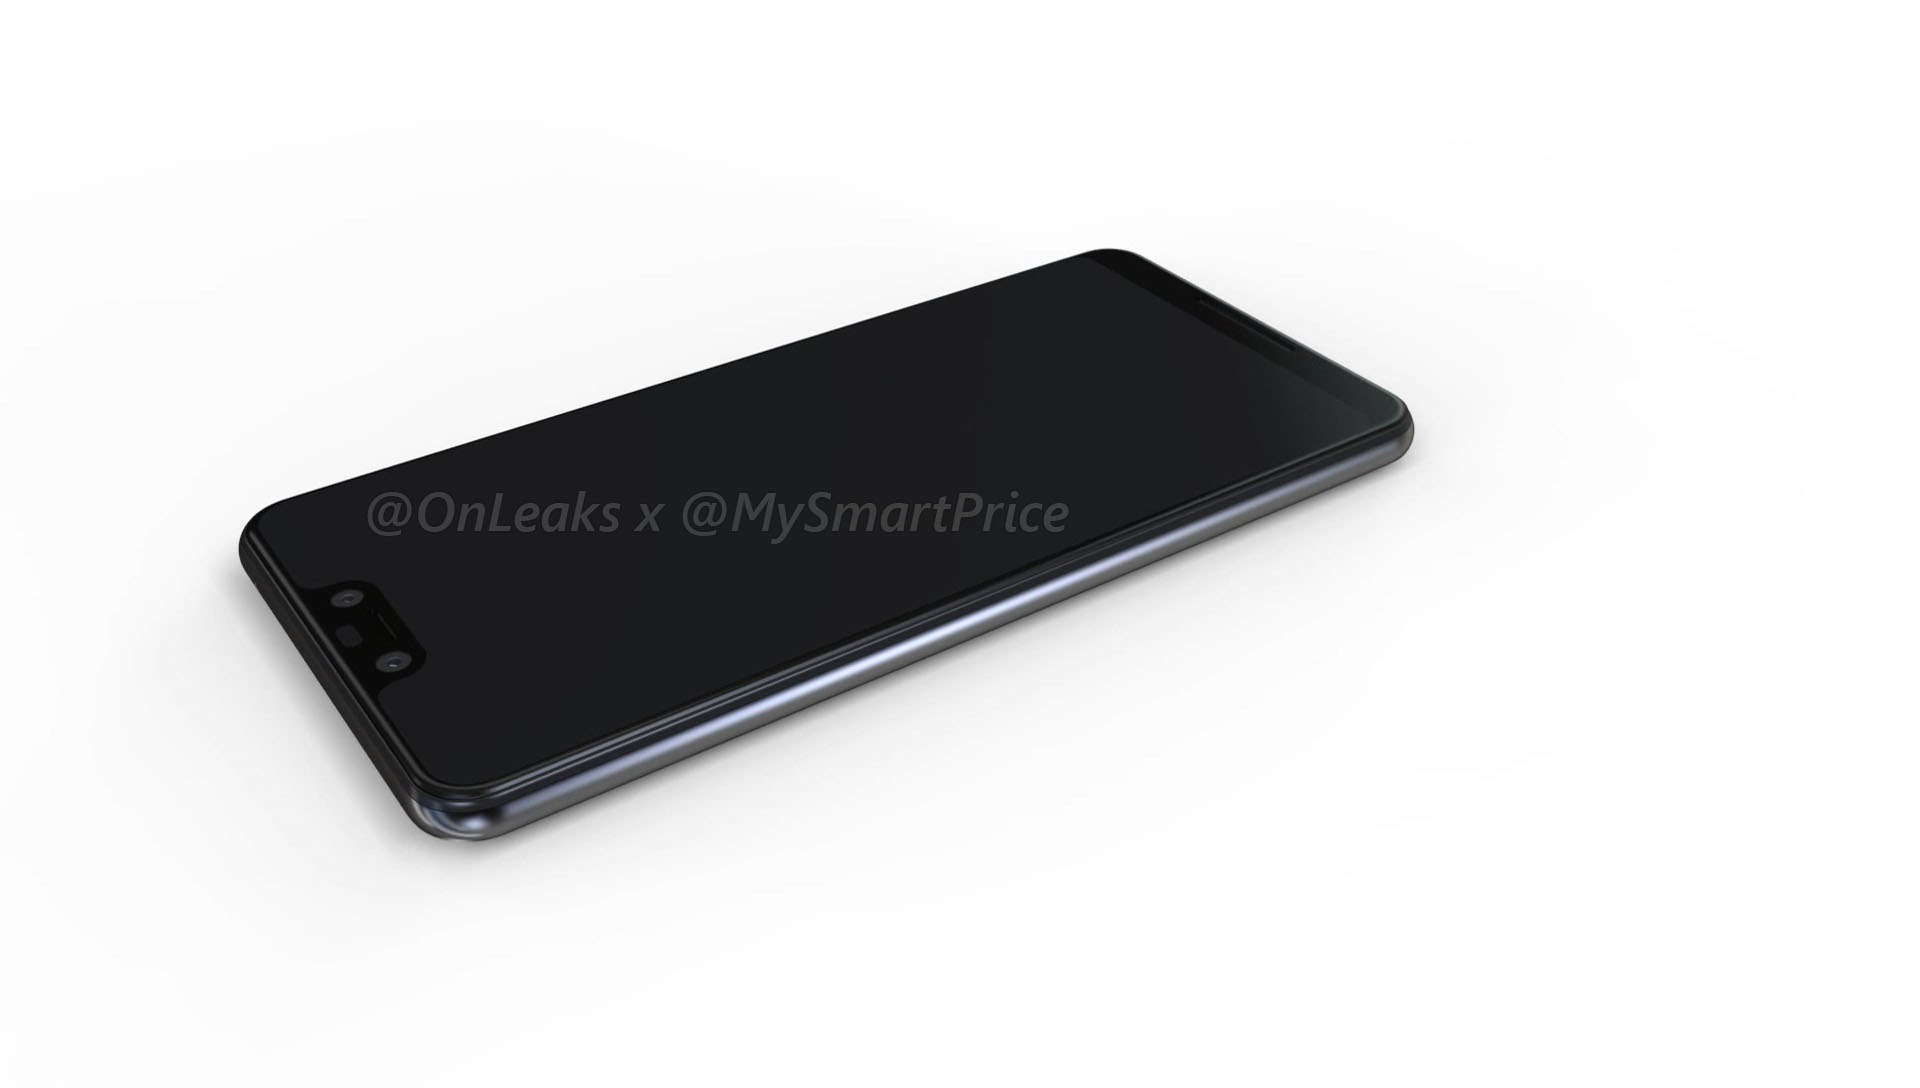 Google Pixel 3 & Pixel 3 XL - Here's our best look at the design 20